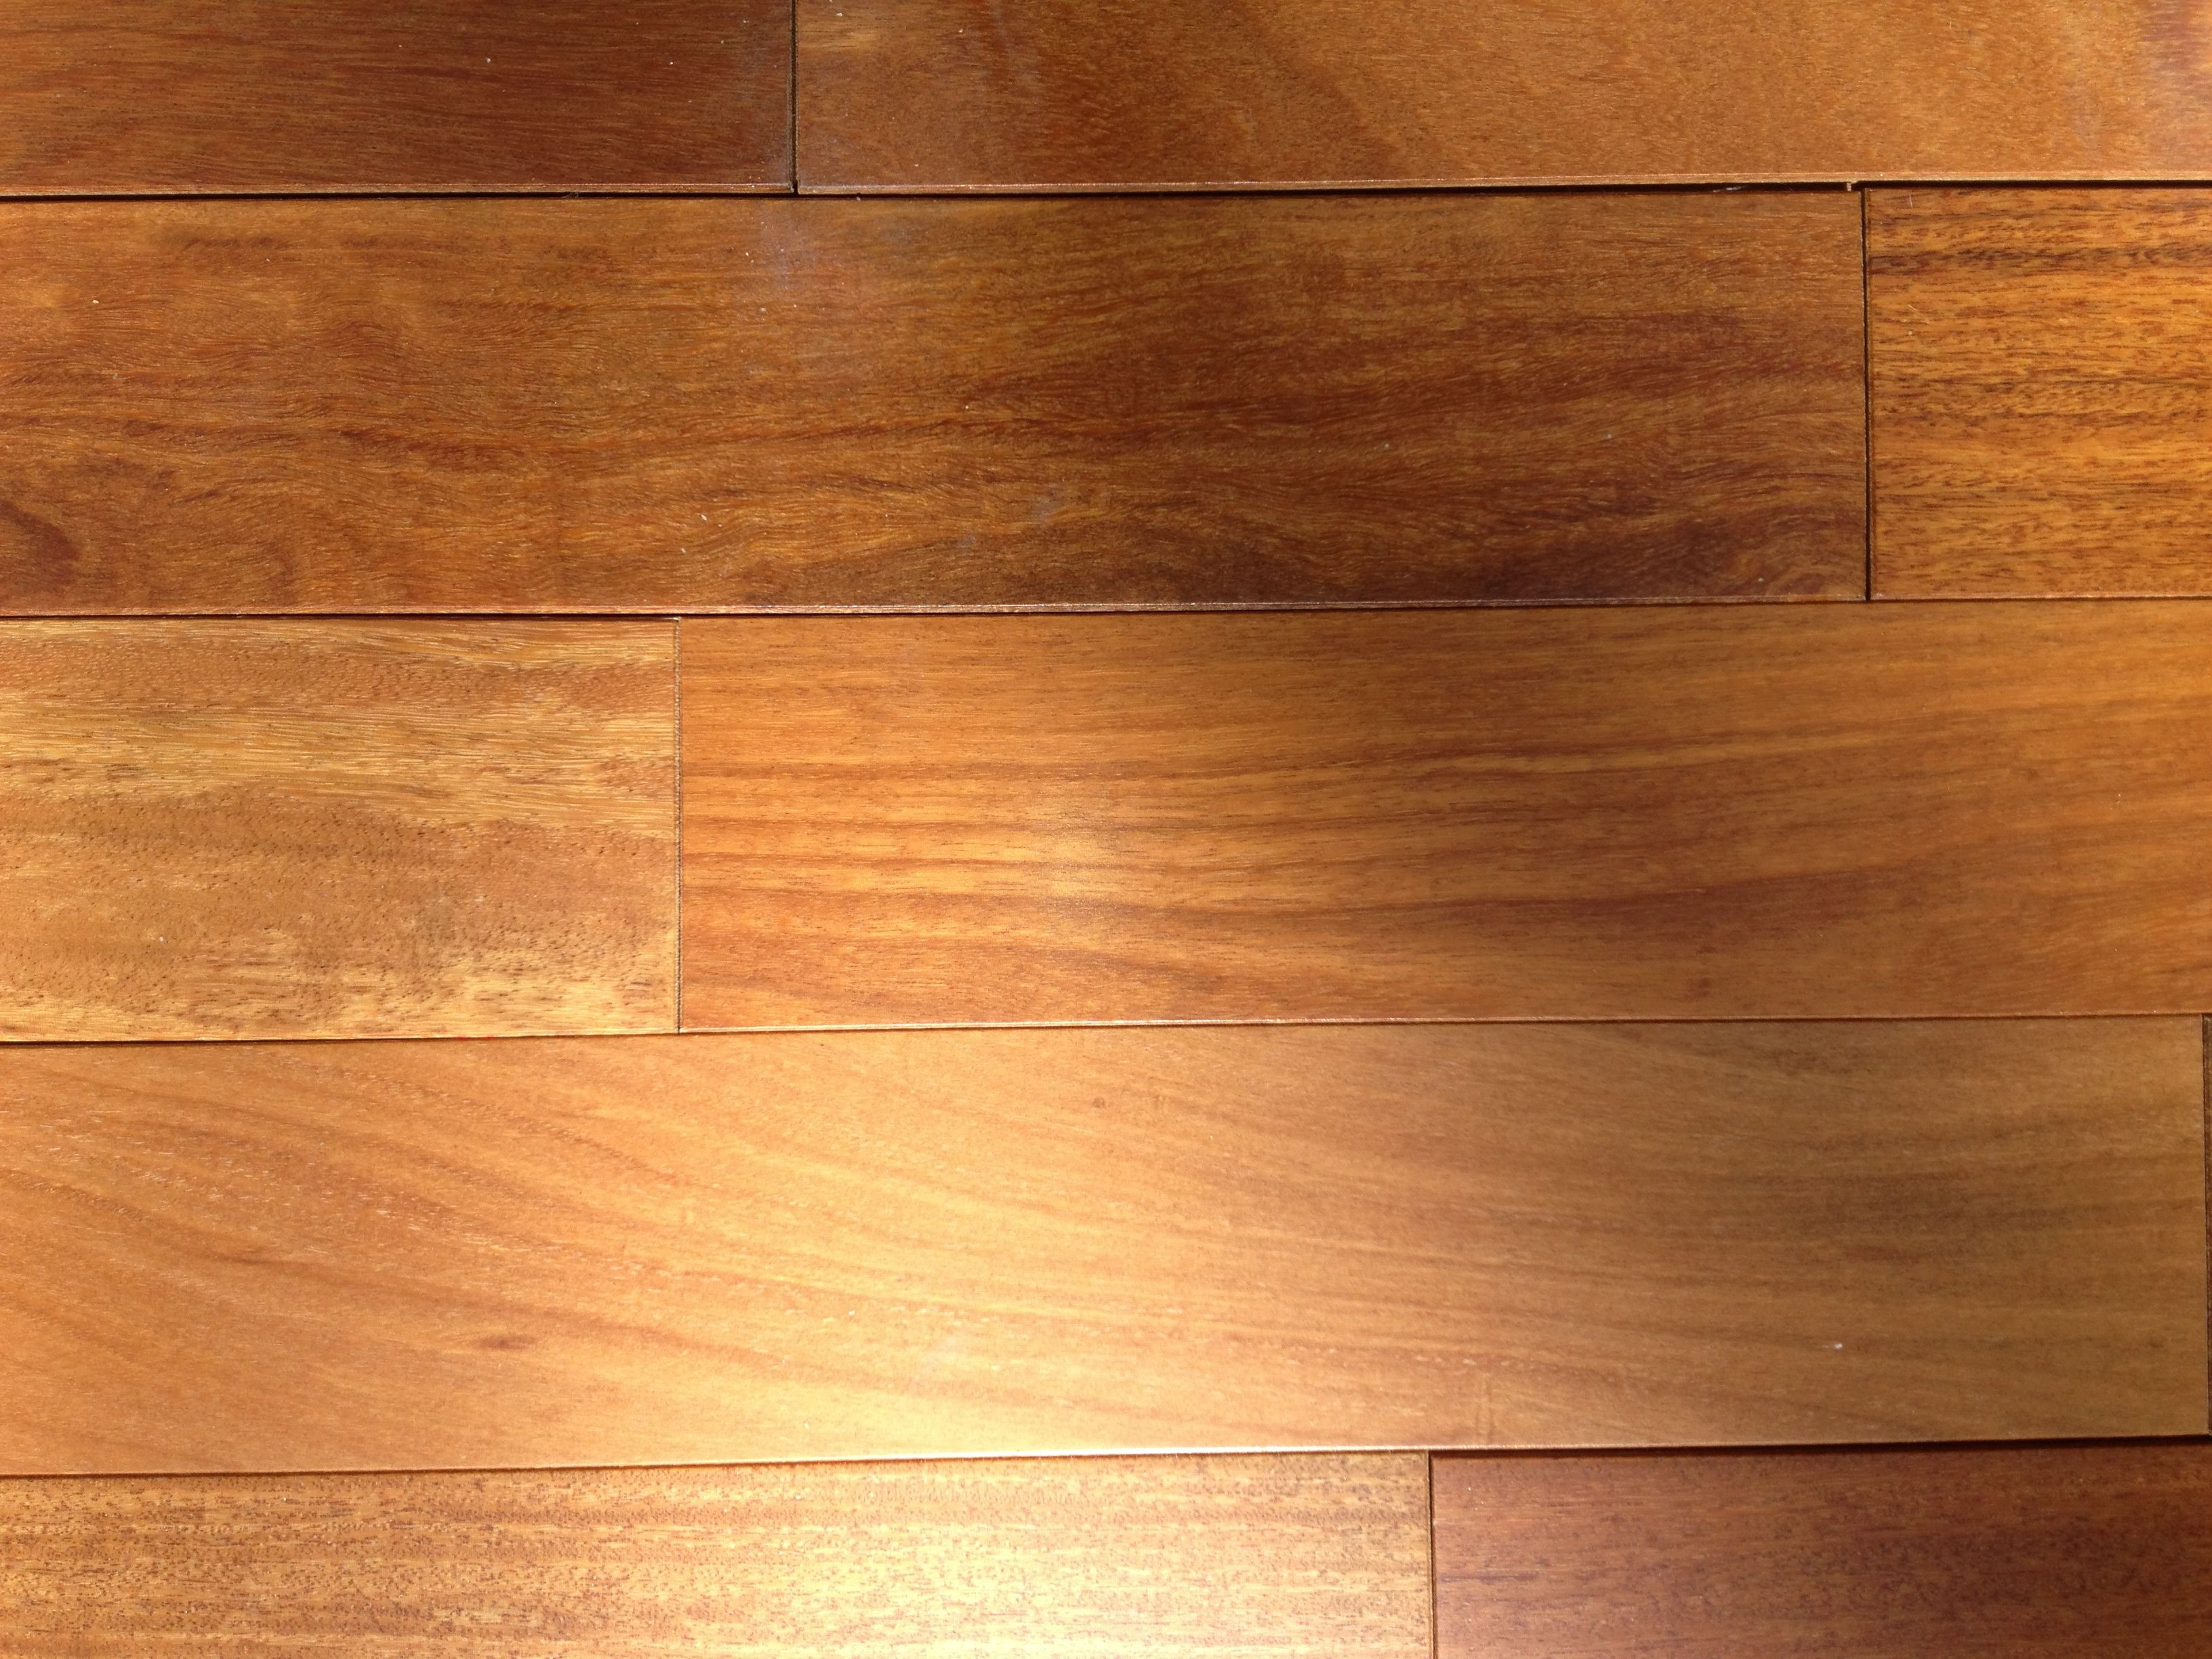 Brazilian teak cumaru hardwood flooring unfinished for Red cumaru flooring